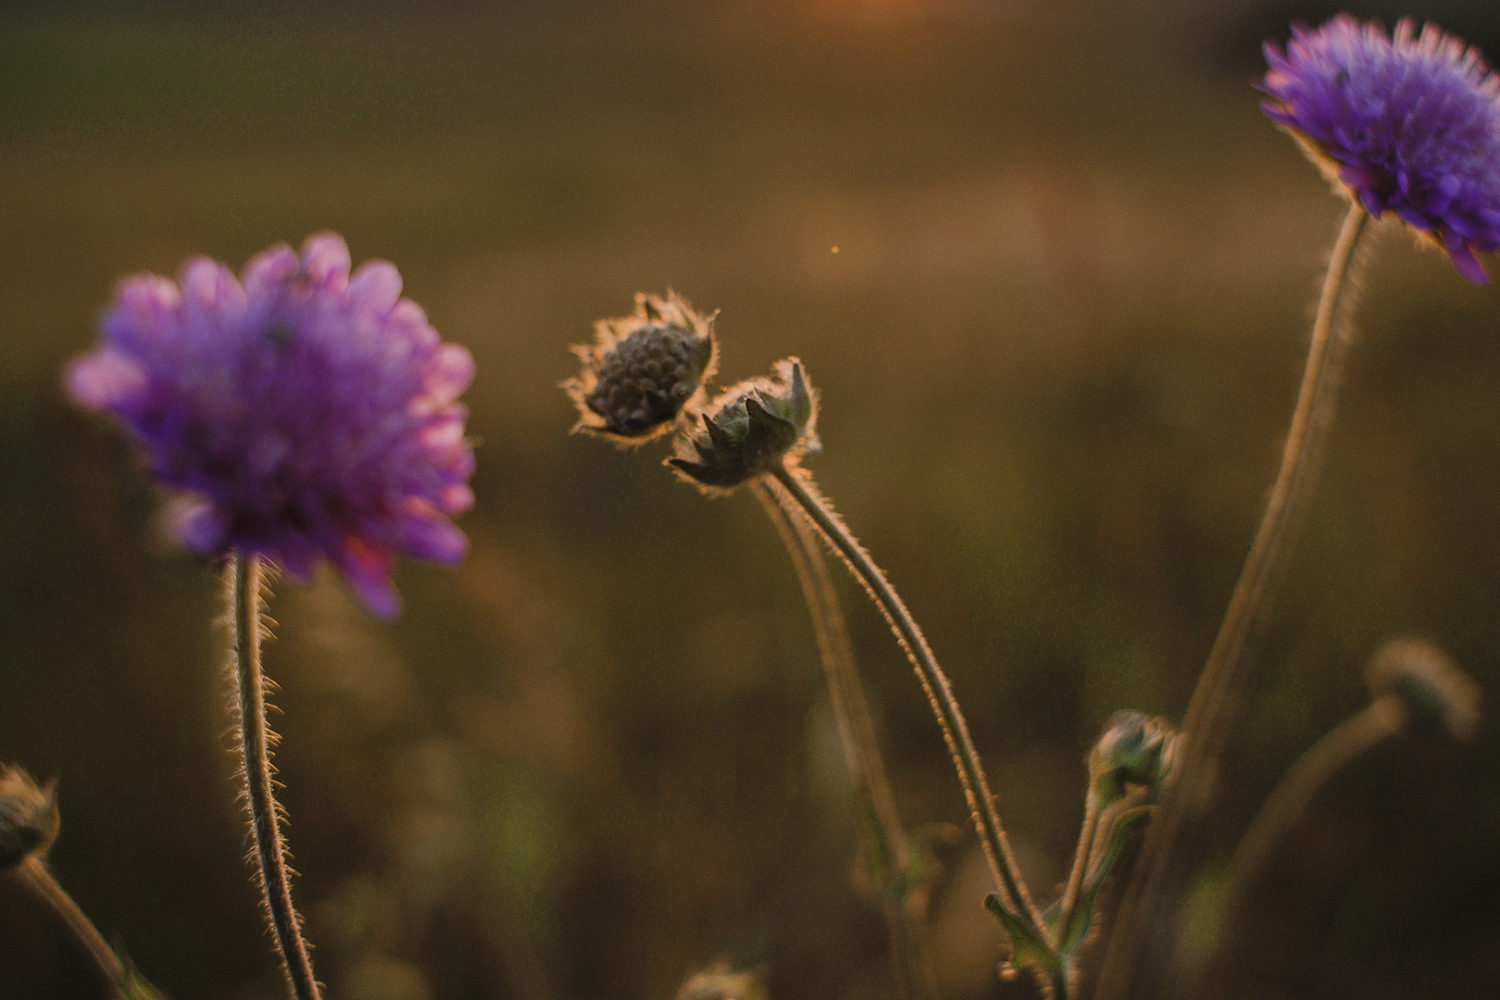 Brilliant botanicals: Nine tips for photographing your garden